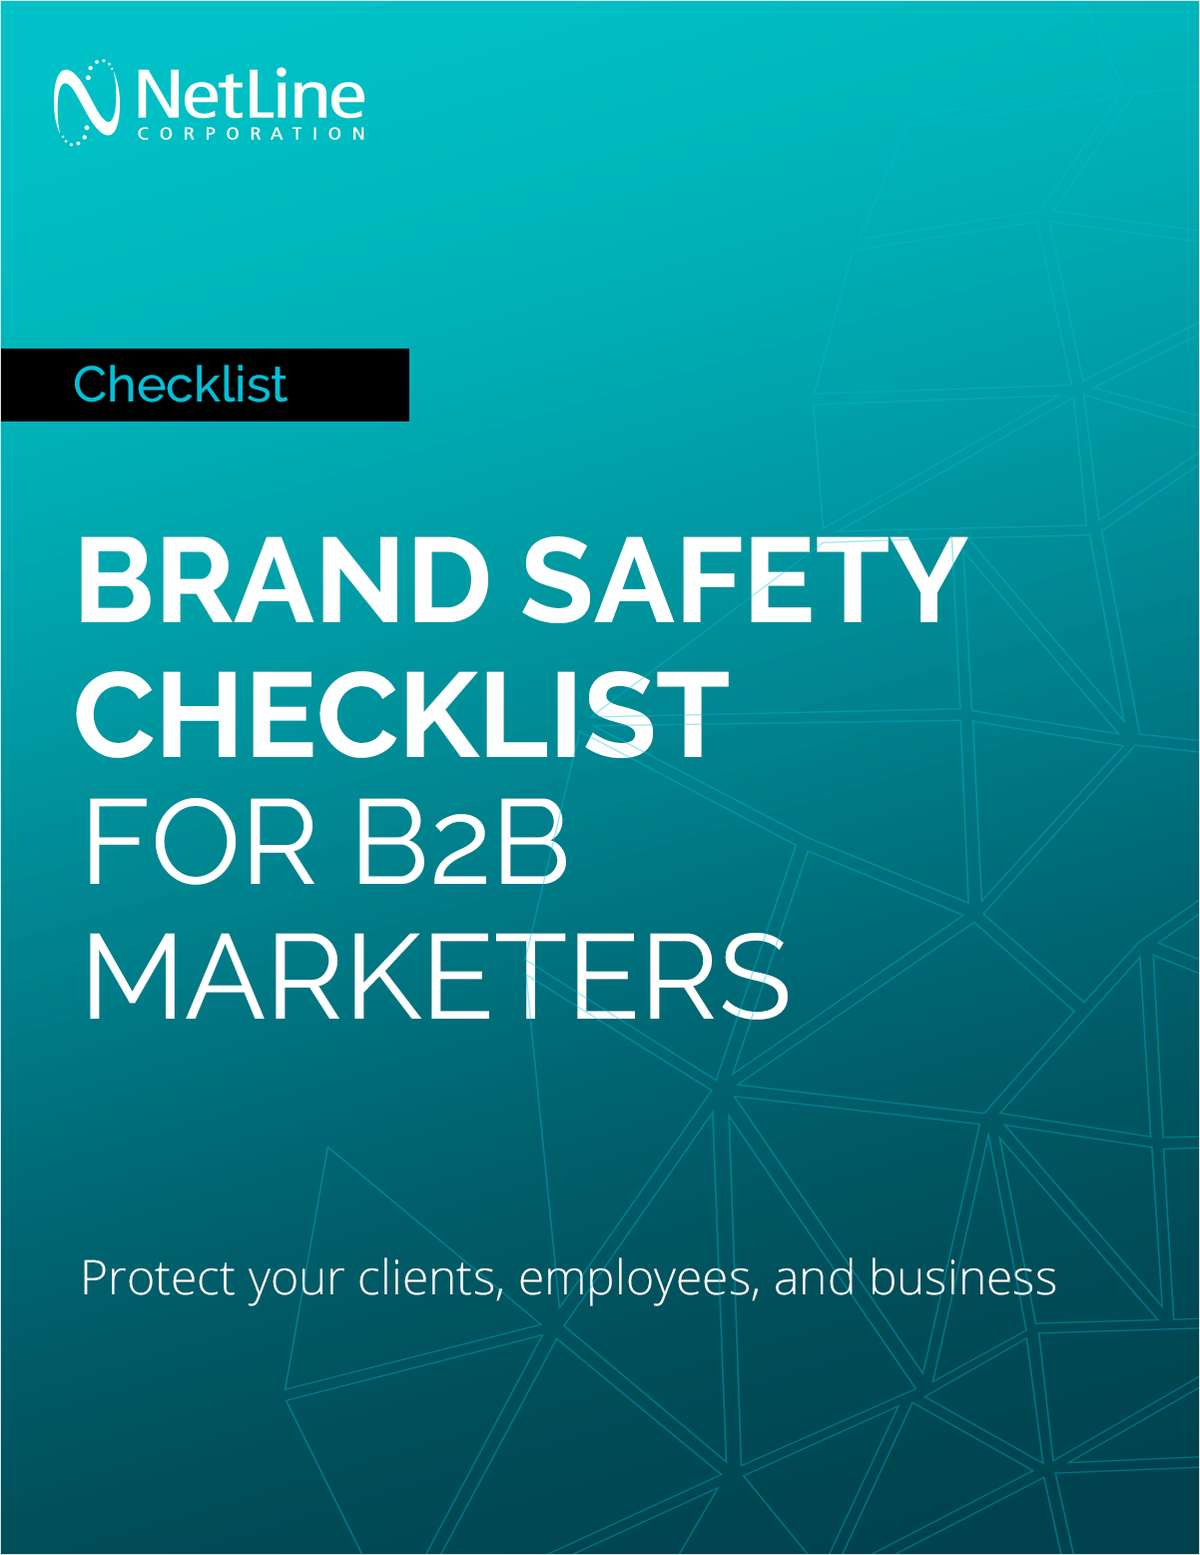 Brand Safety Checklist for B2B Marketers